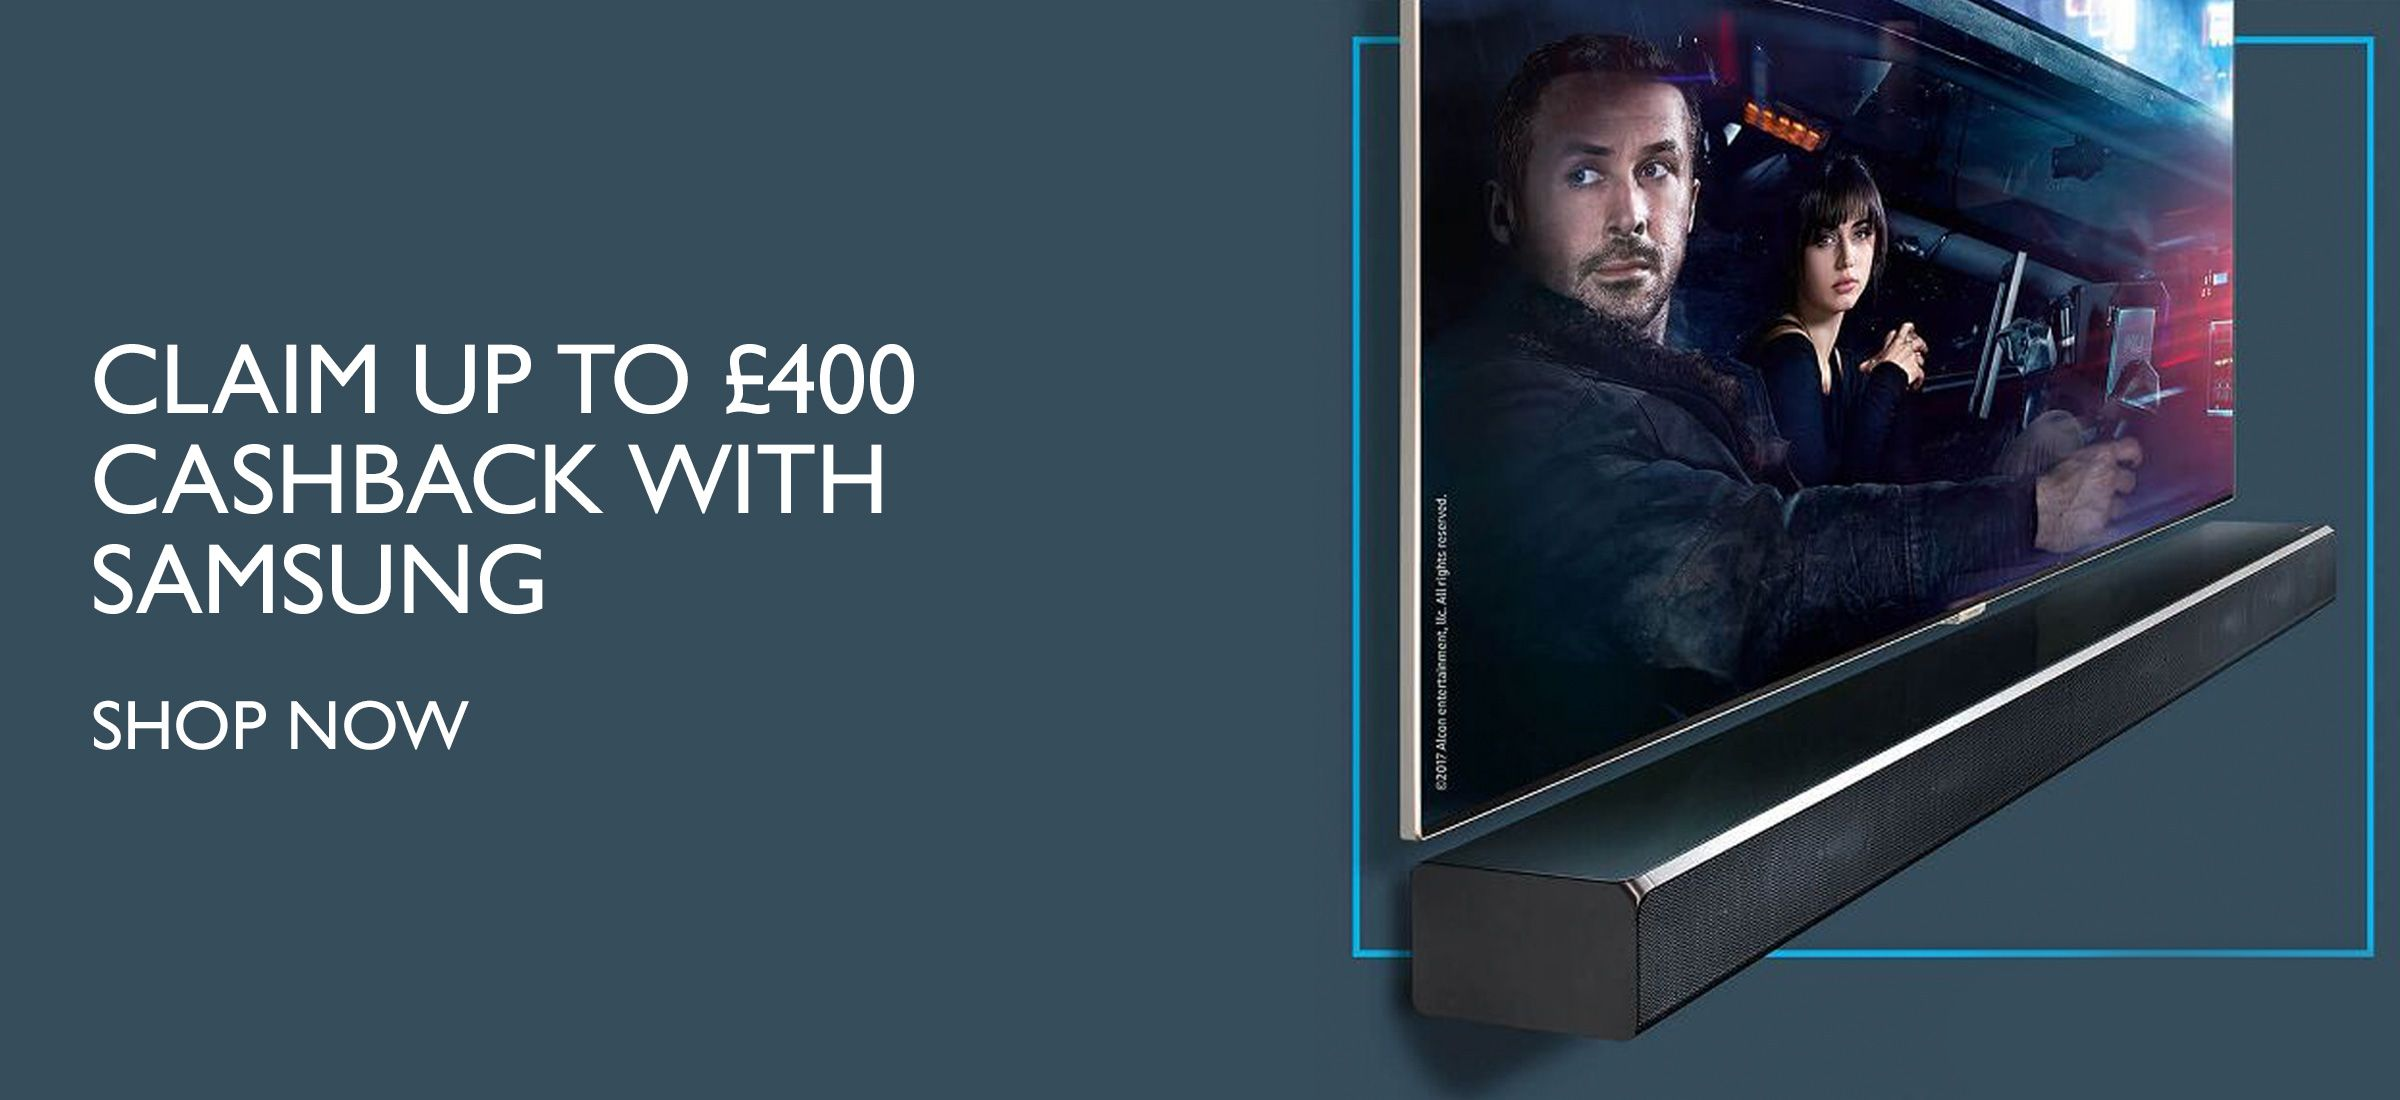 CLAIM UP TO £400 CASHBACK WITH SAMSUNG